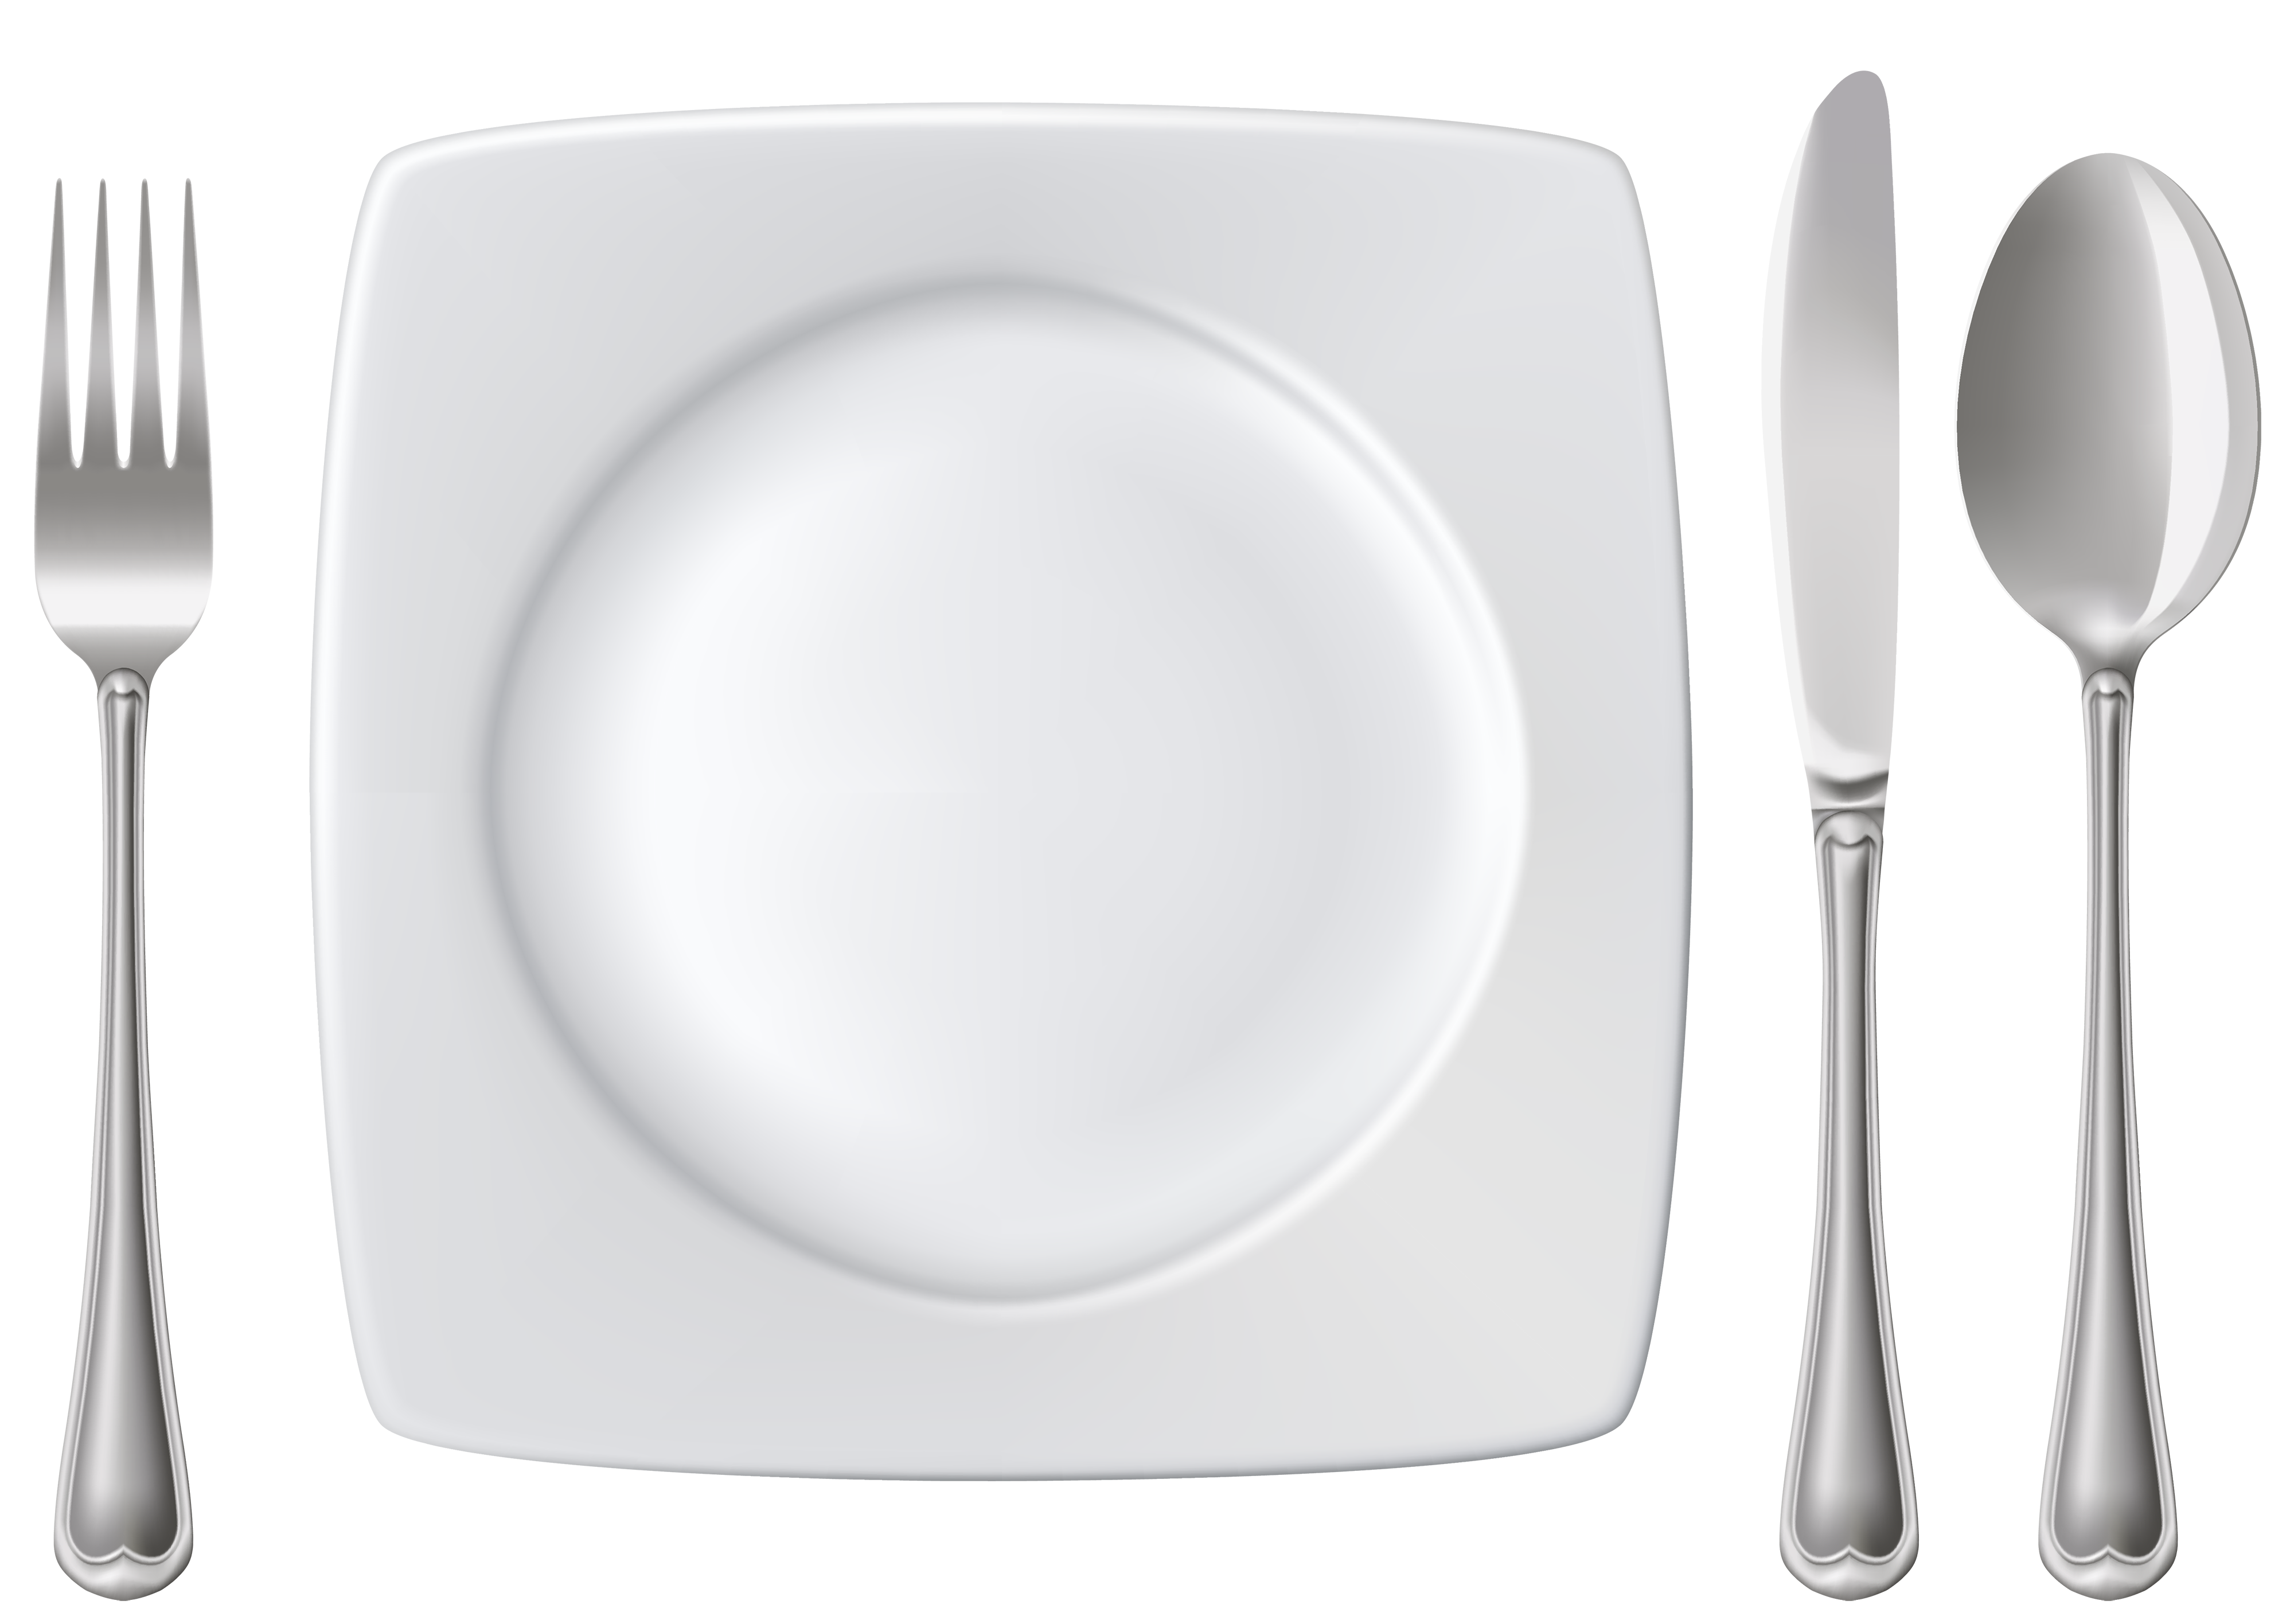 Plate clipart stack plate. Spoon knife and fork